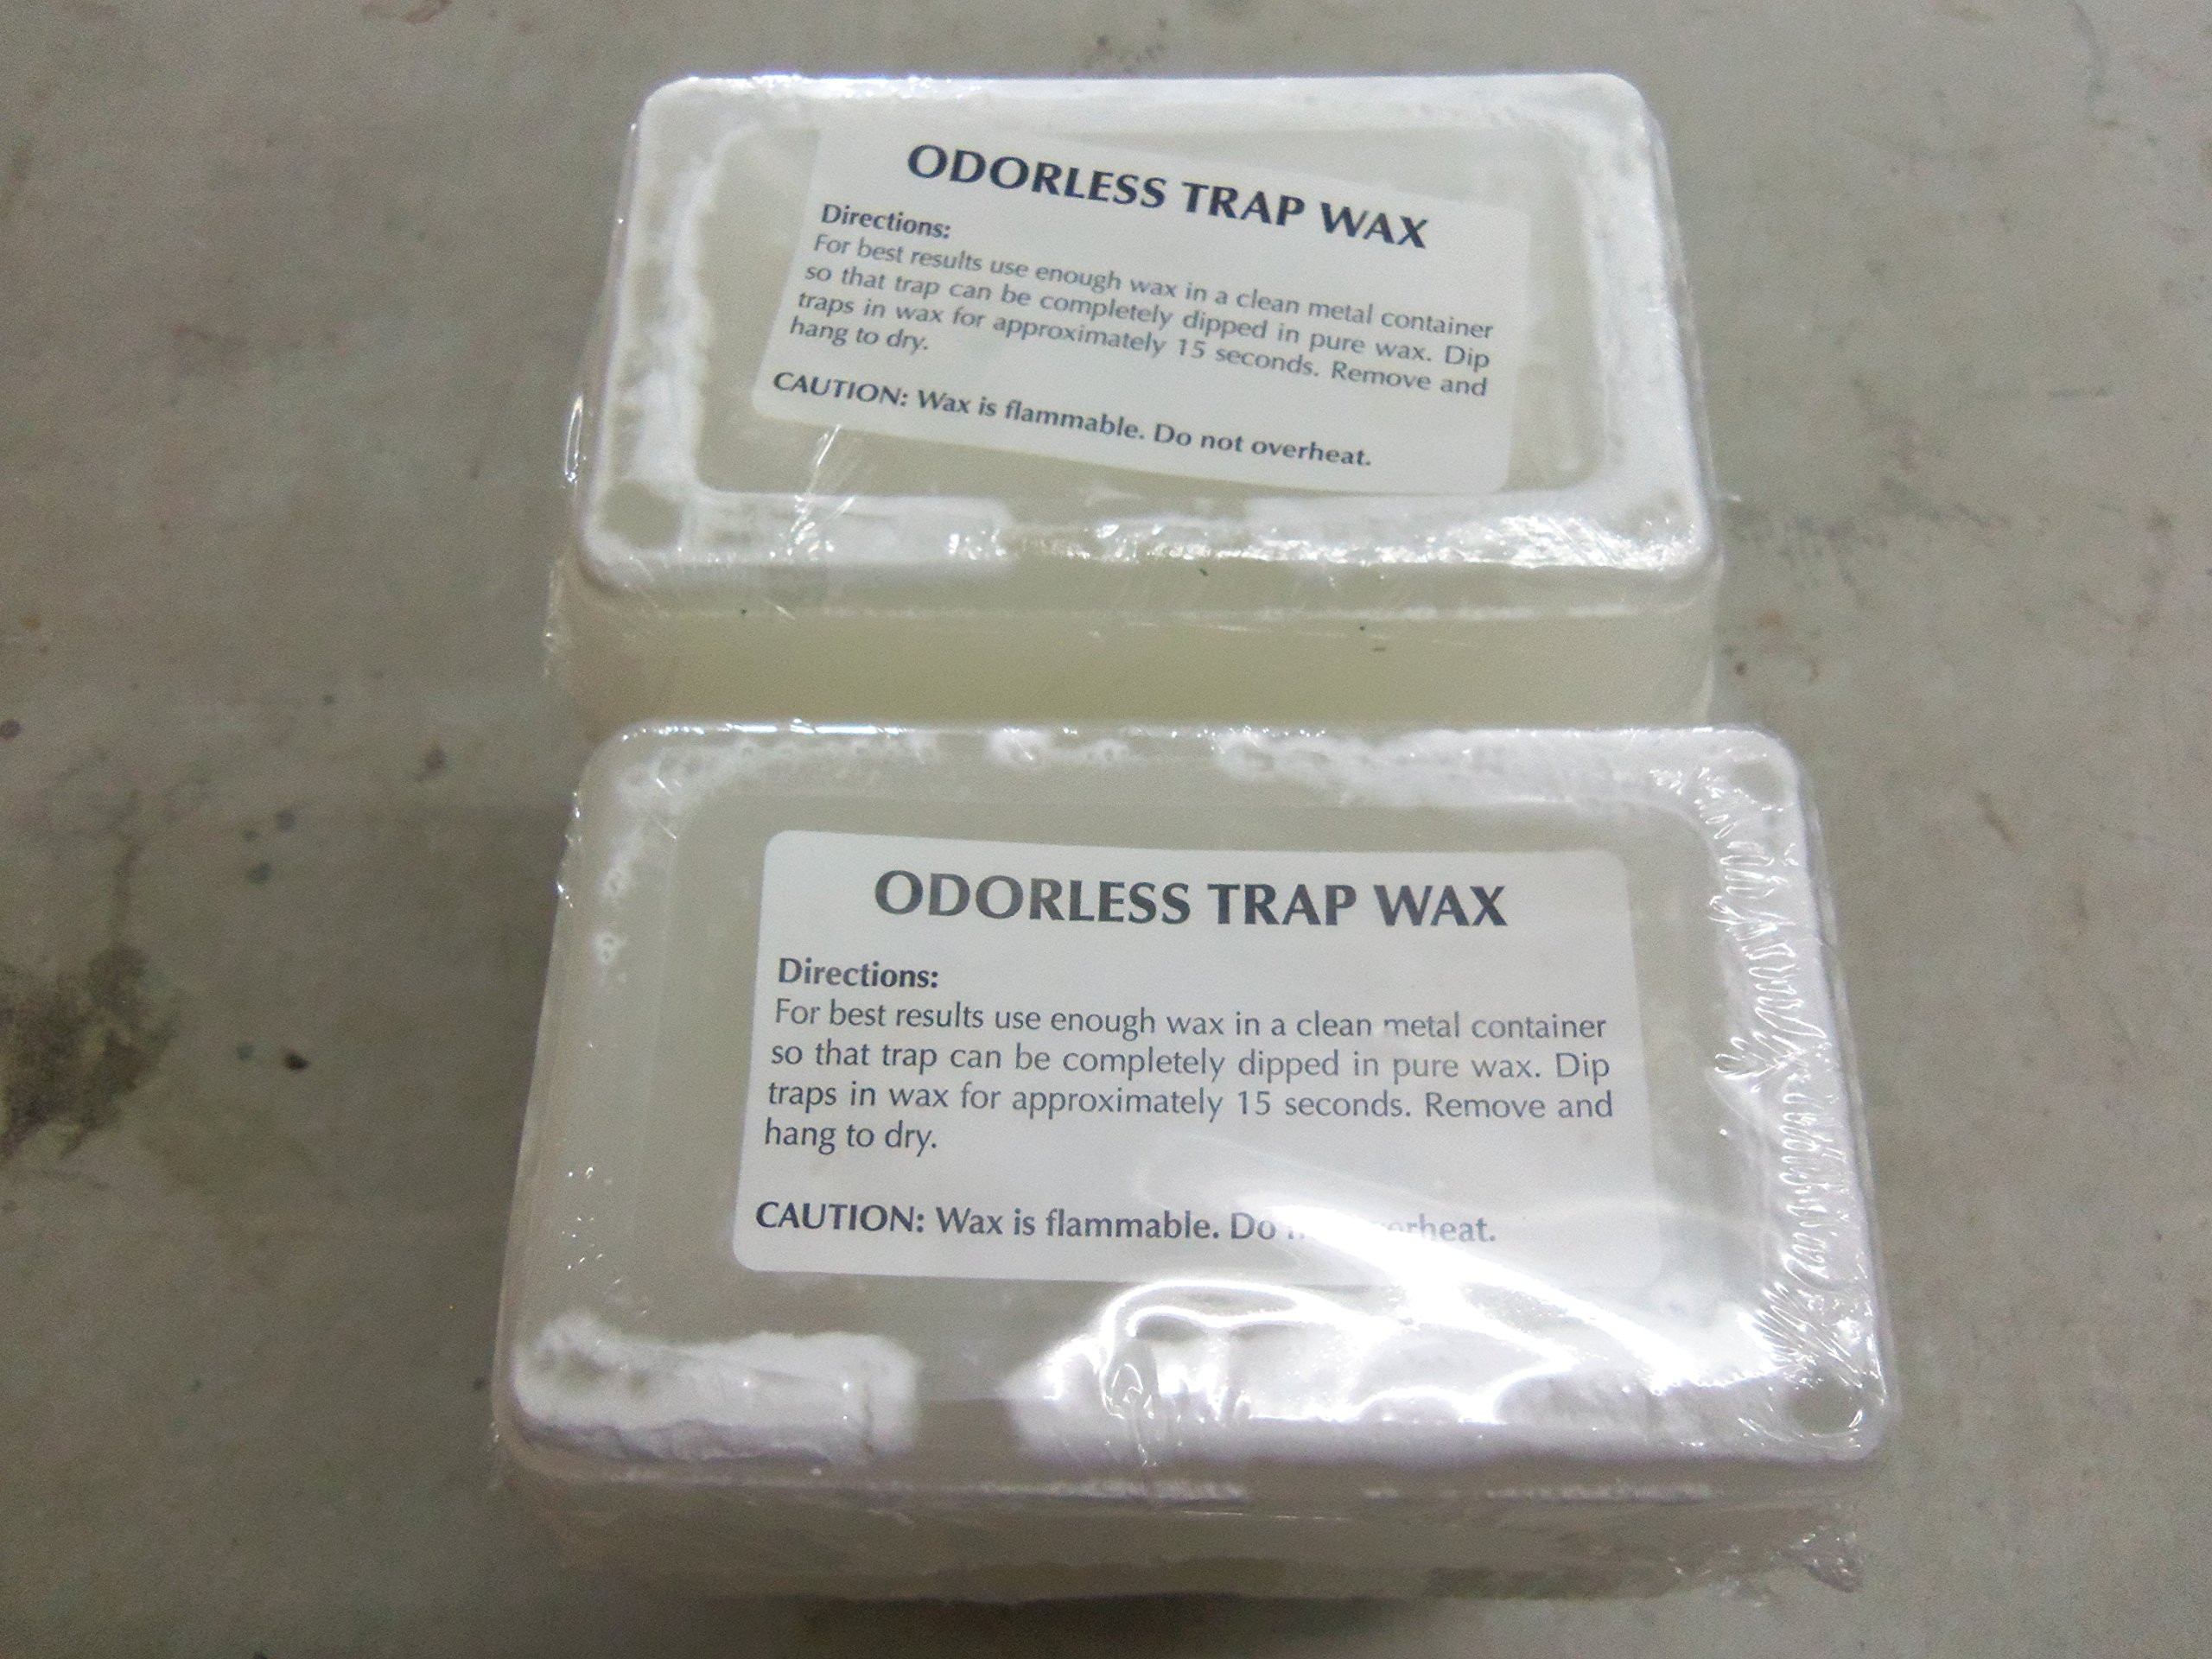 White Trap Wax 10 Lbs. by White Trap Wax 10 Lbs.